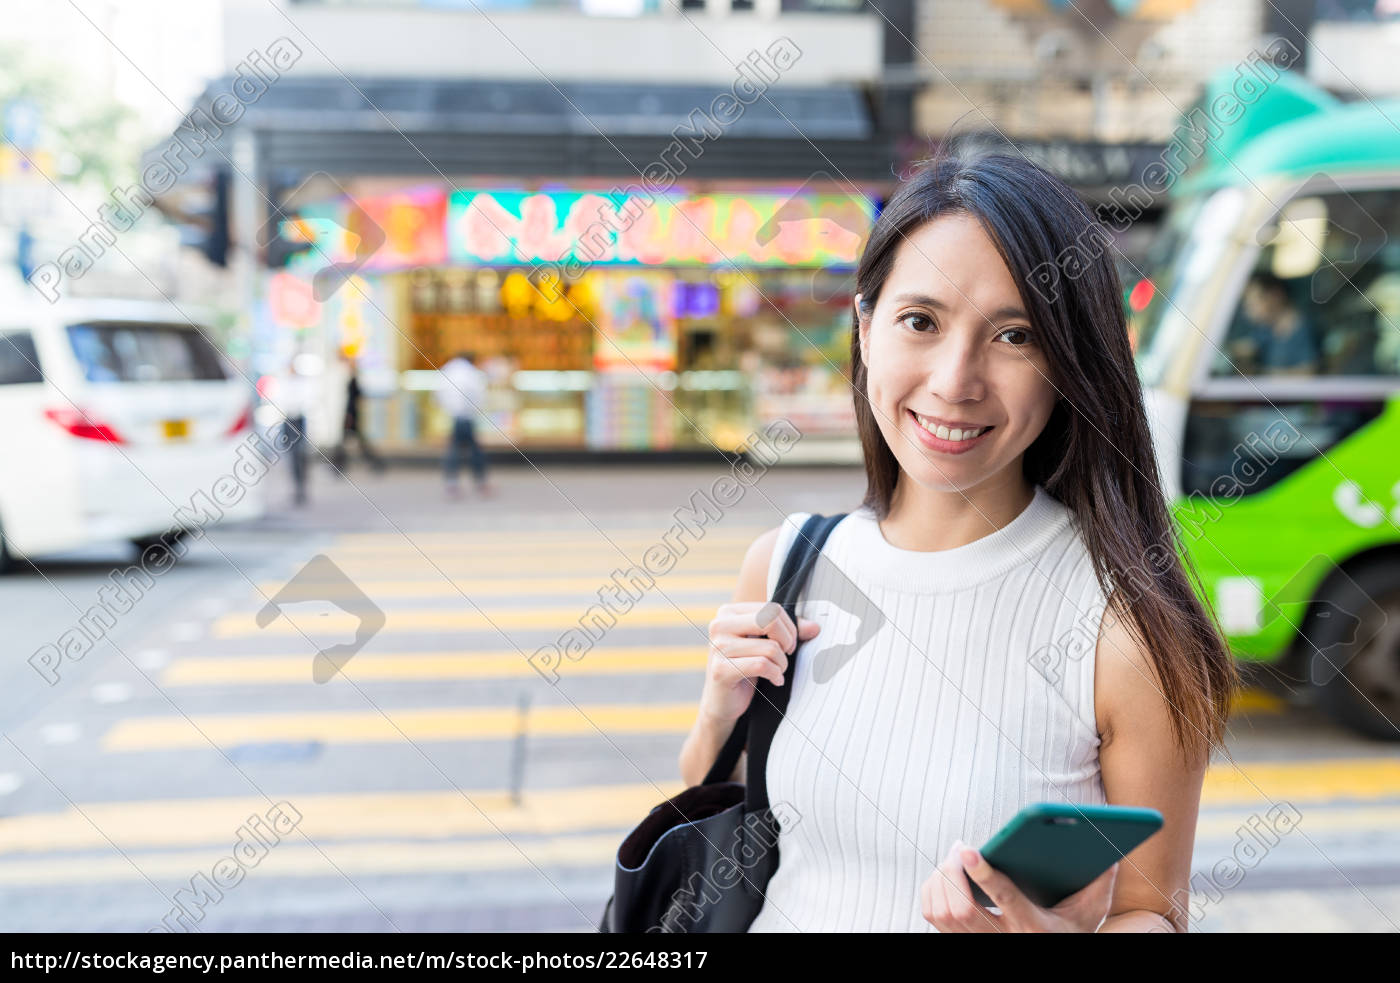 woman, holding, cellphone, in, street, of - 22648317